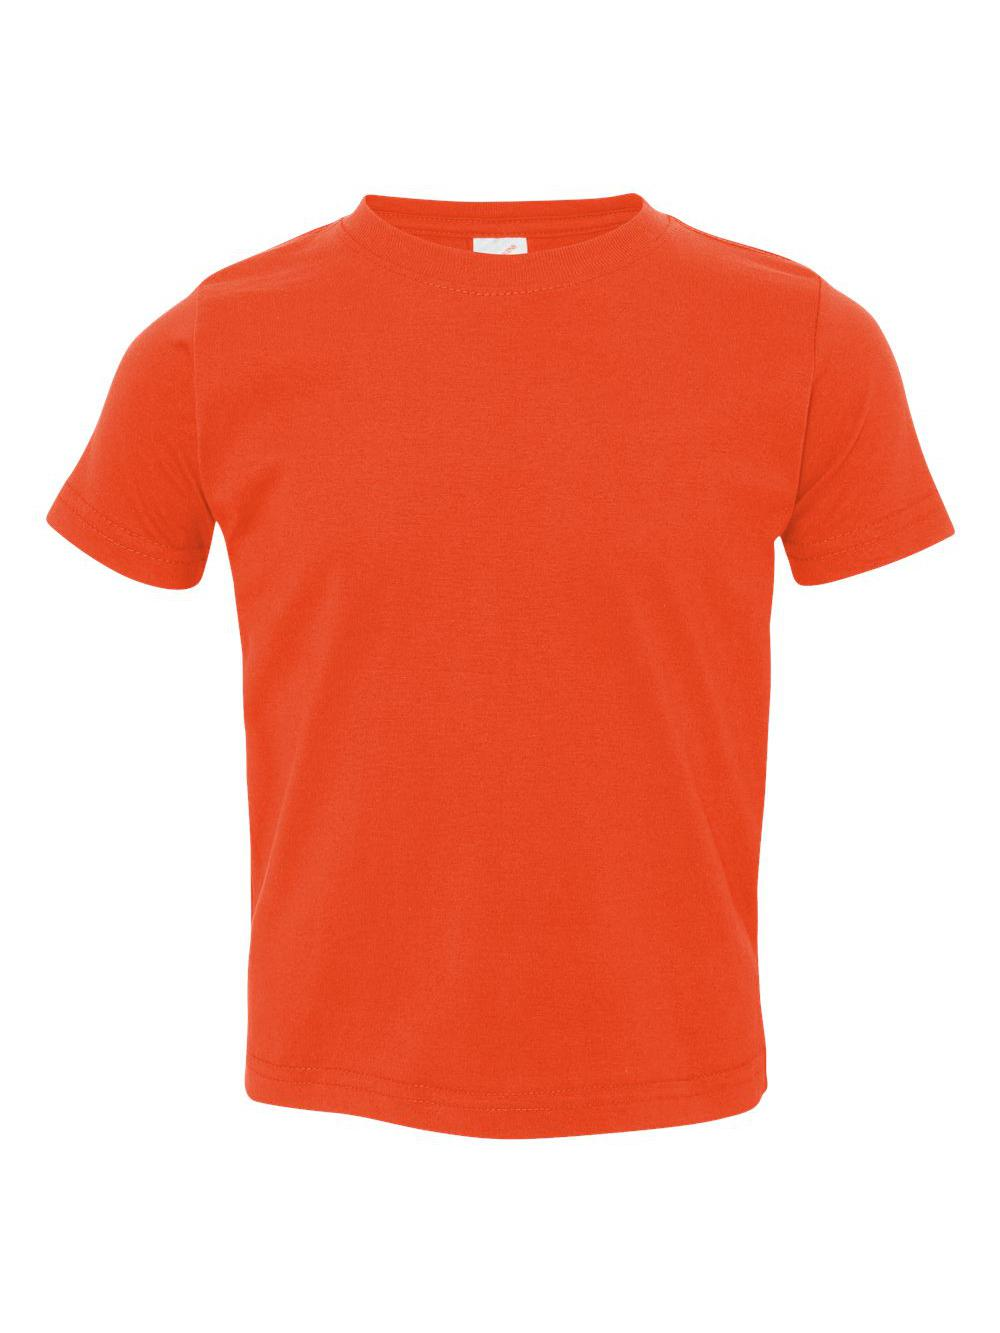 dab8e7242 Rabbit Skins Kids Tees Tops Fine Jersey Toddler T-shirt 3321 Orange 5/6  B31838666. About this product. Picture 1 of 4; Picture 2 of 4; Picture 3 of  4 ...